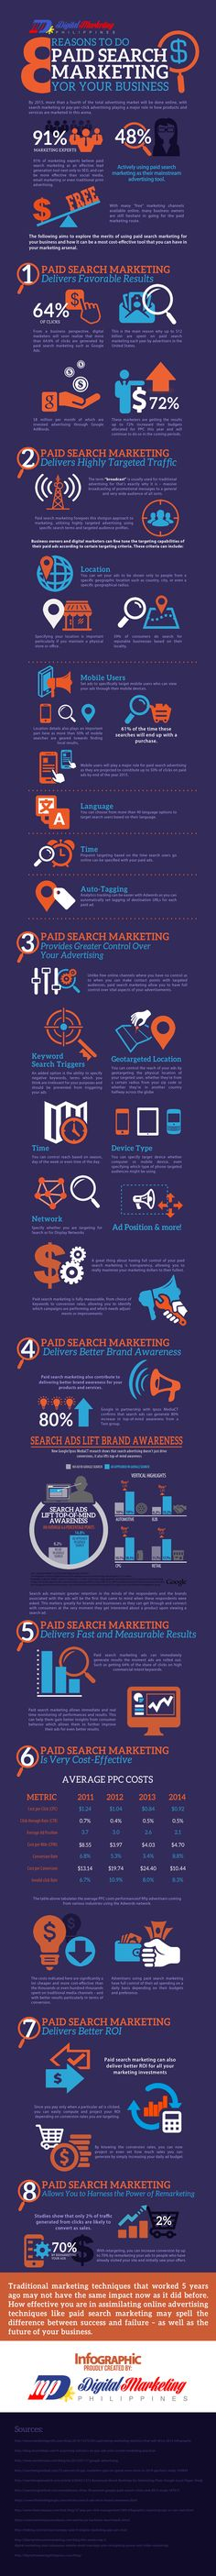 8 Reasons to Do Paid Search Marketing for your Business #Infographic #marketingonline #SEO